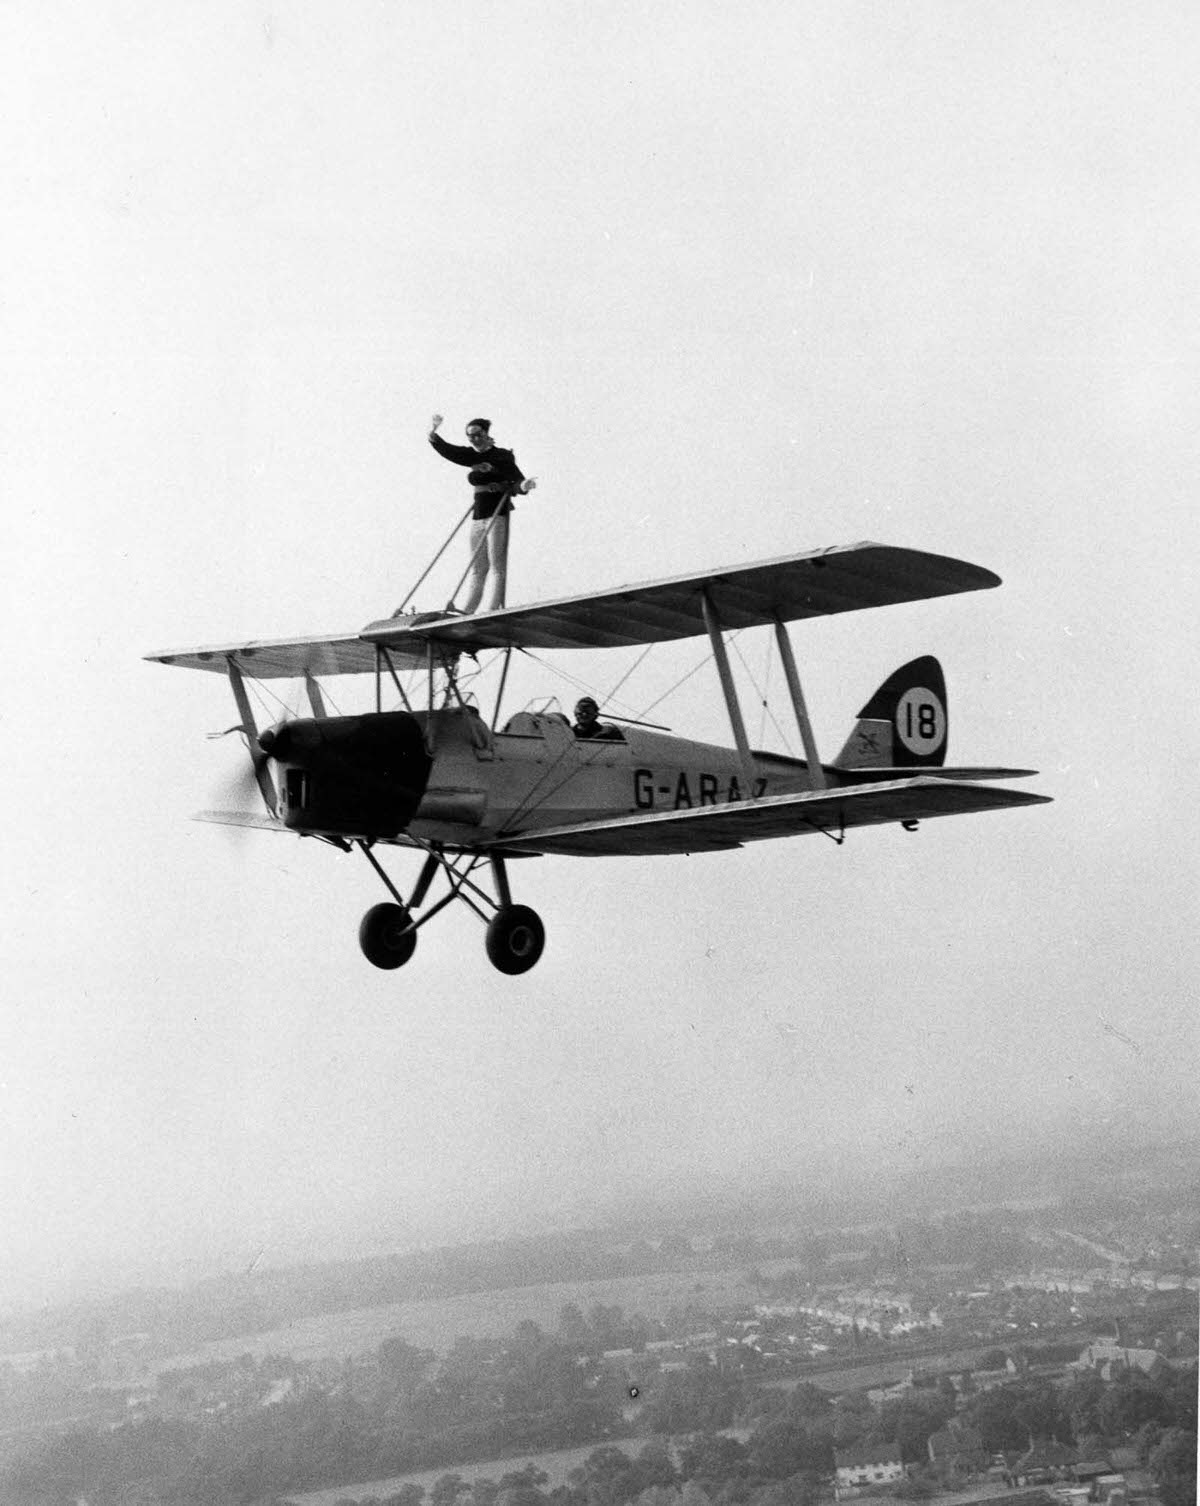 Juanita Jover takes a ride strapped to the wings of her boyfriend, stunt pilot Lewis Benjamin's Tiger Moth biplane, 1962.